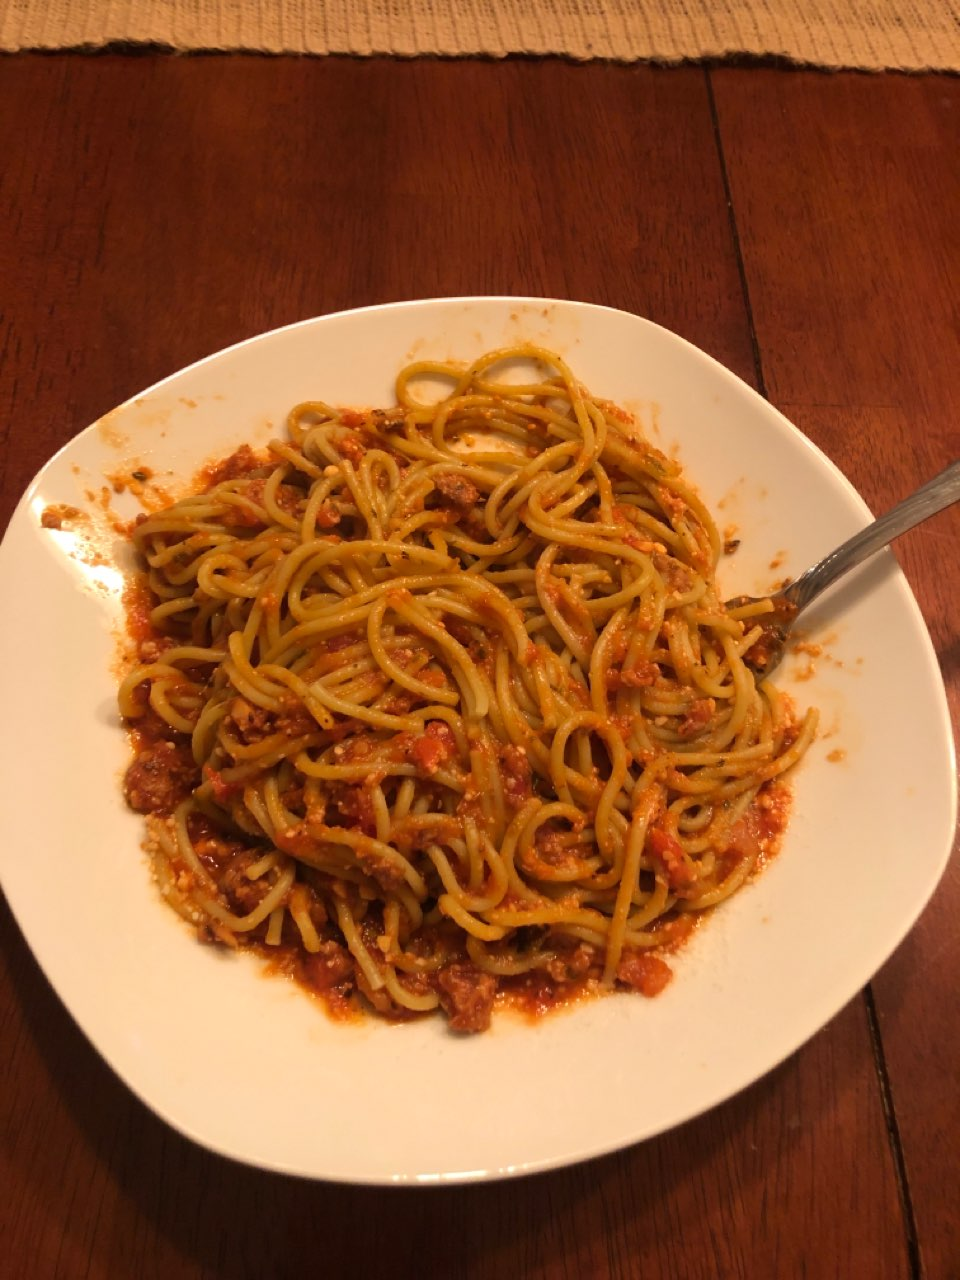 Turkey Spaghetti W Veggie Noodles Directions Calories Nutrition More Fooducate